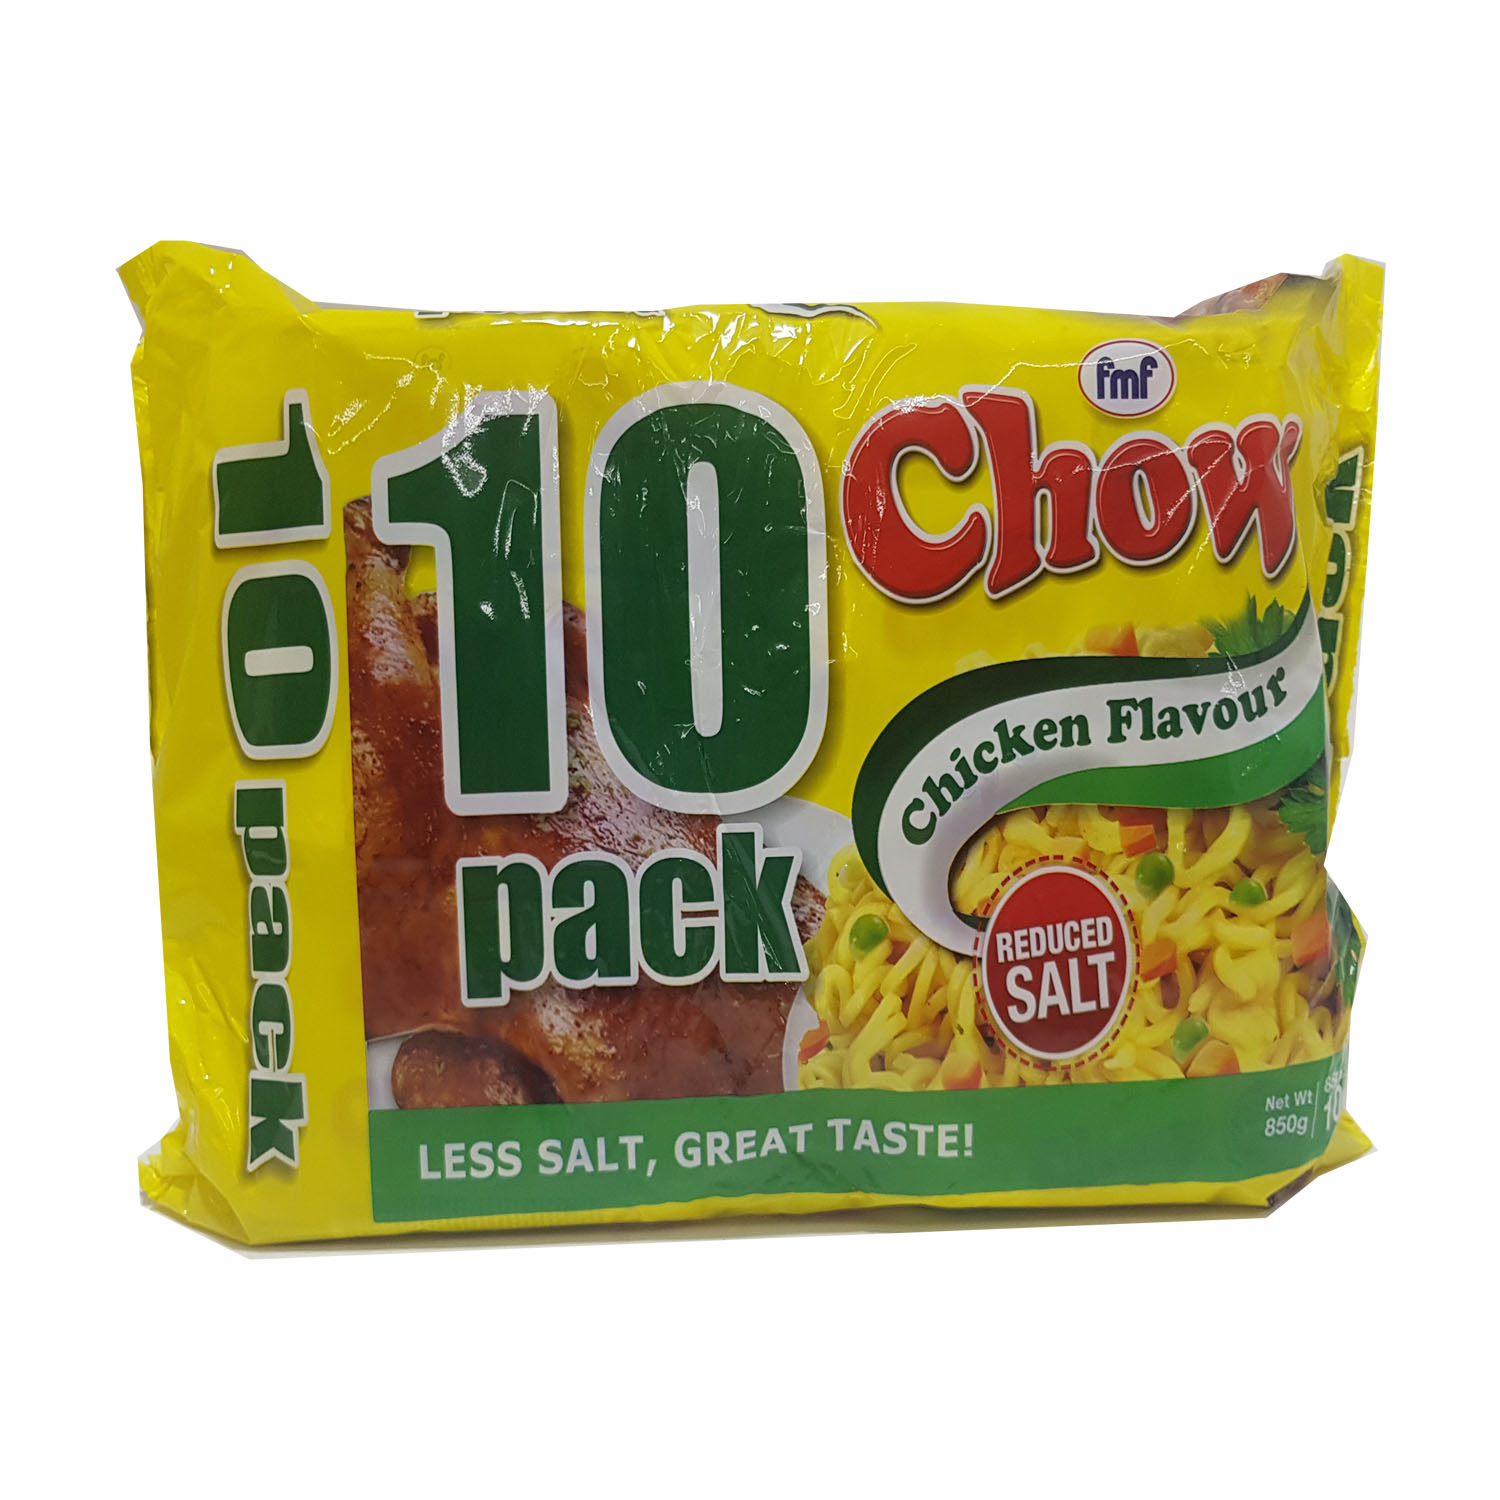 FMF Chow Chicken Noodles 10pack